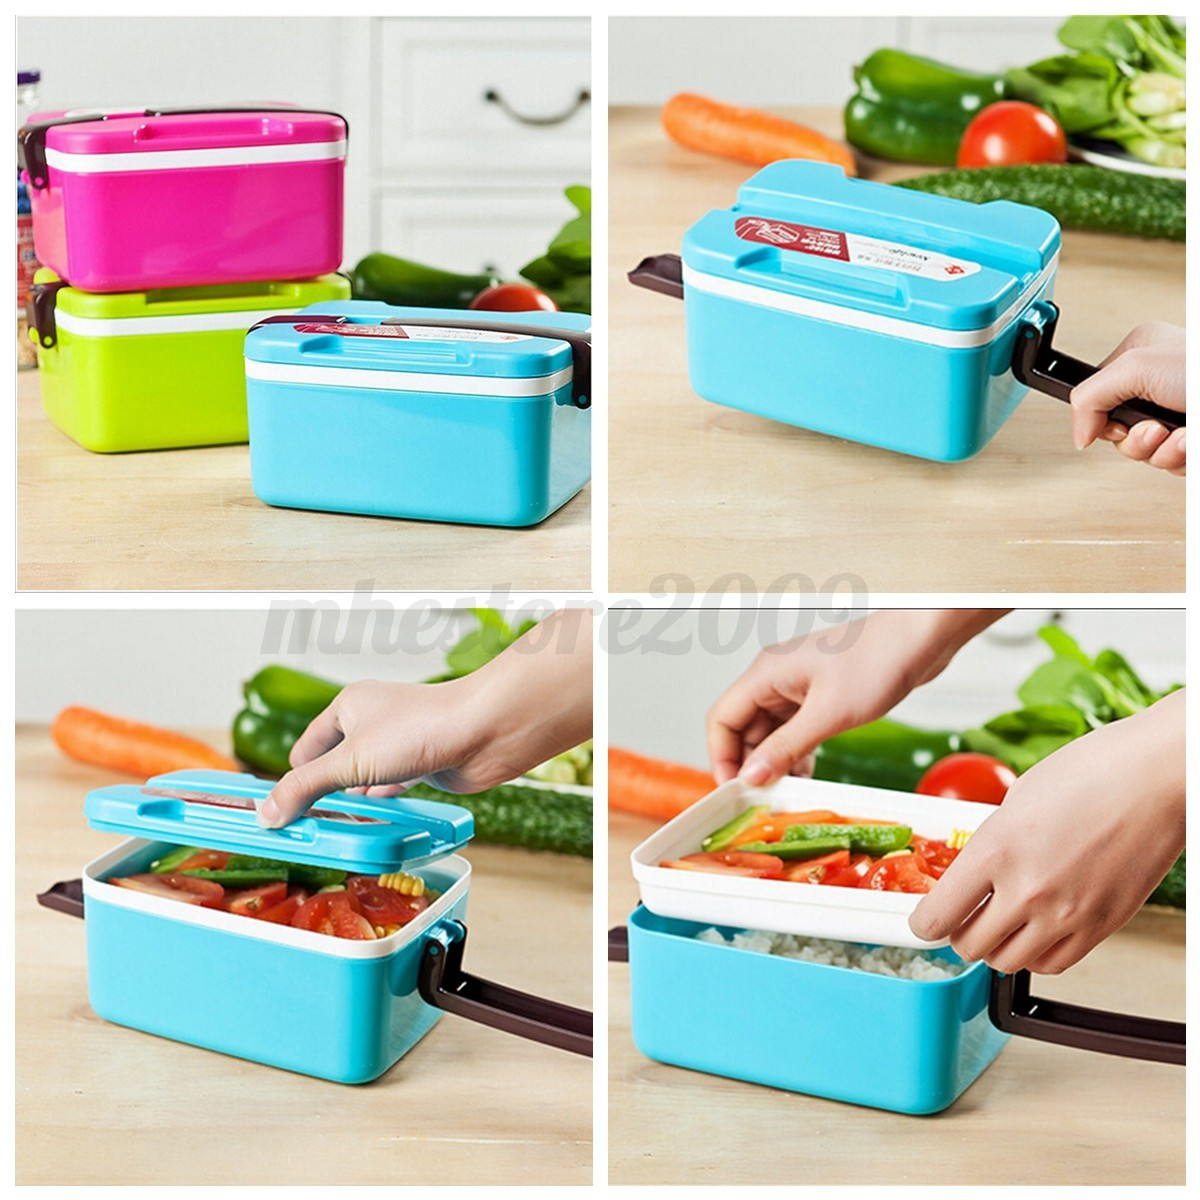 2 layer microwave bento lunch box picnic food container spoon storage w handle ebay. Black Bedroom Furniture Sets. Home Design Ideas